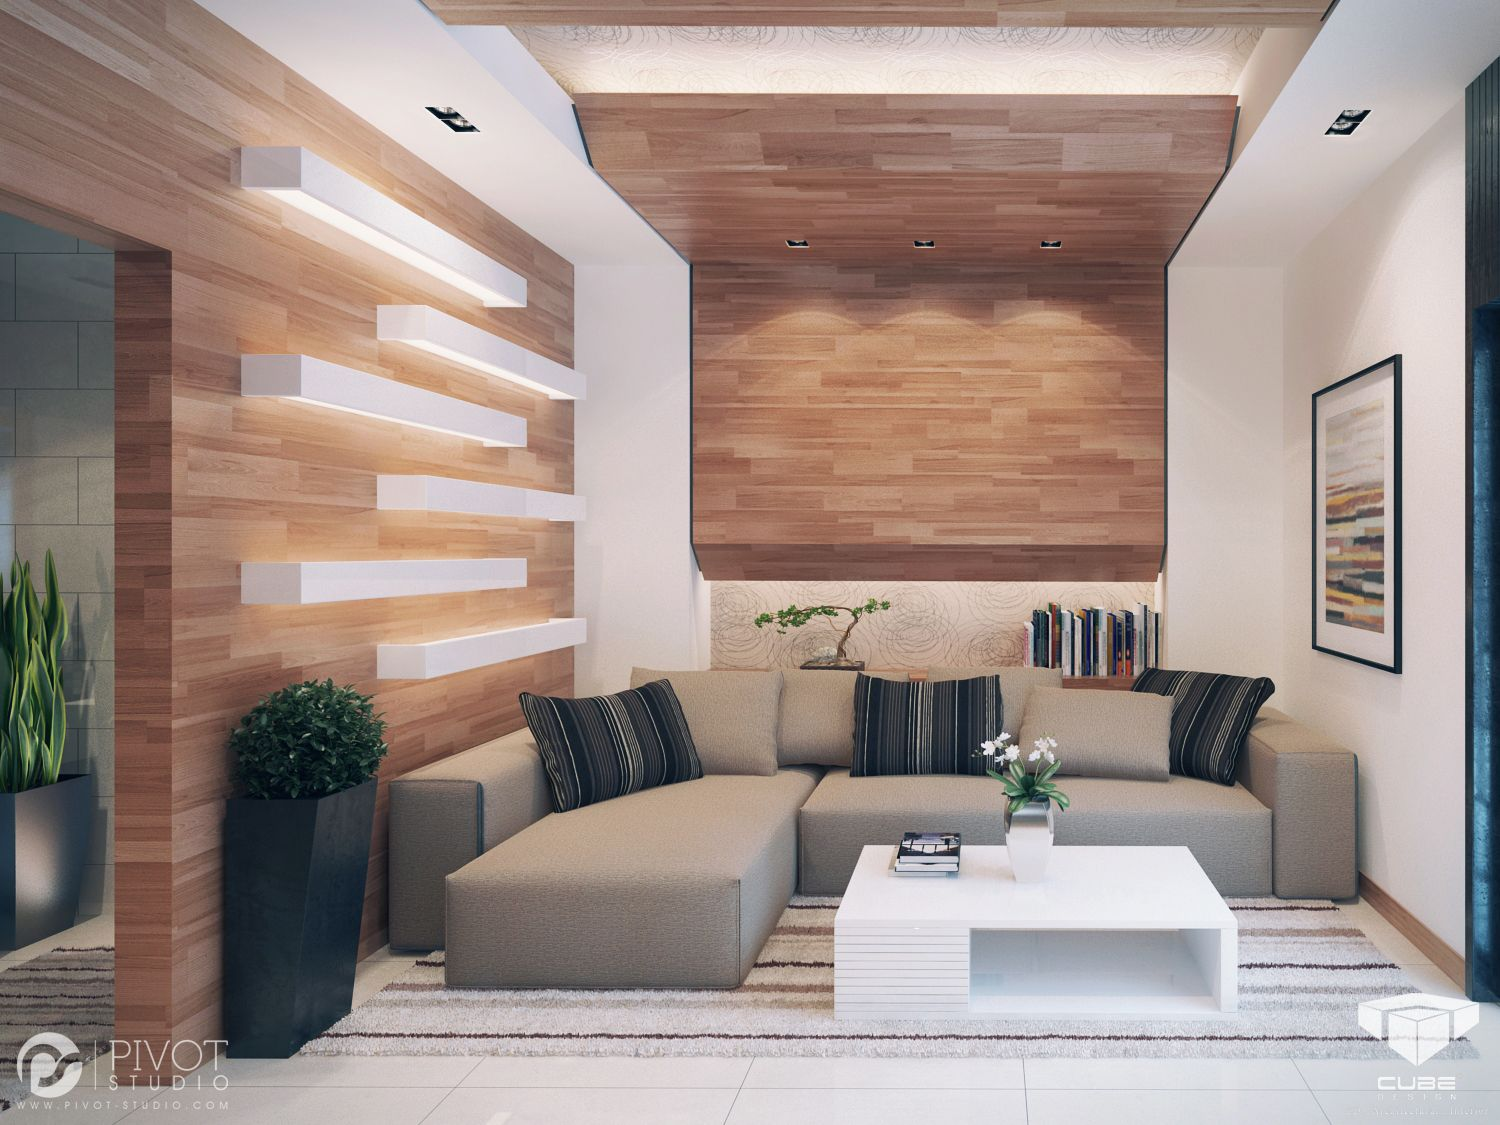 Our Contemporary Design Concepts And 3d Visuals For Residential Villa In Riyadh This Project Was